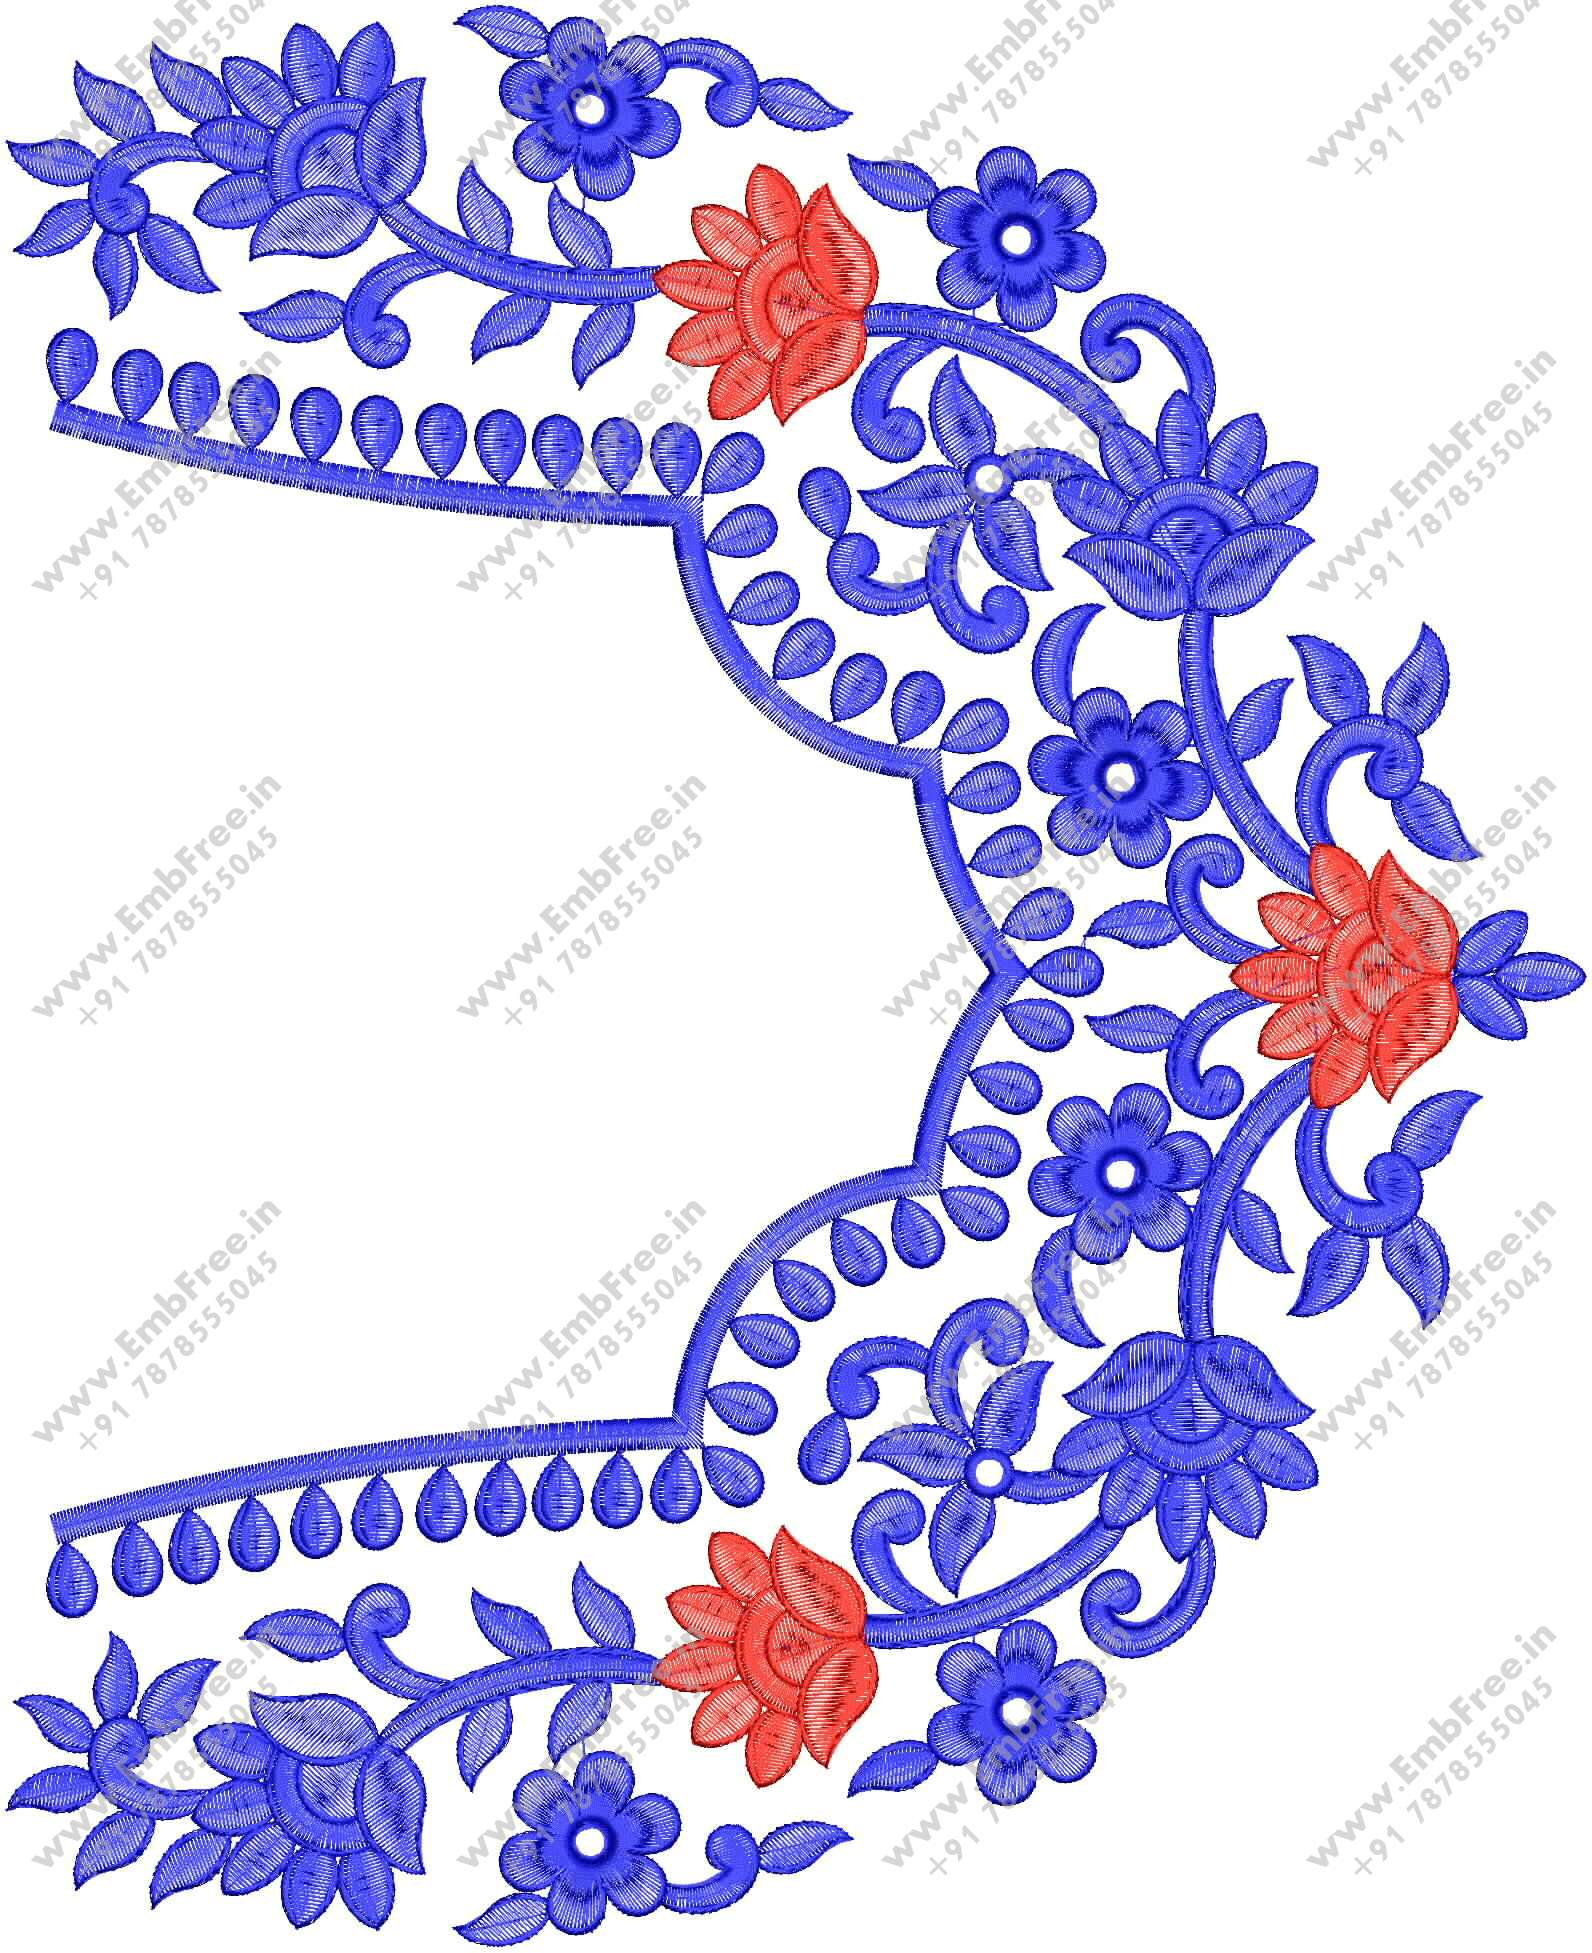 Blouse Embroidery design   Neck Embroidery Design